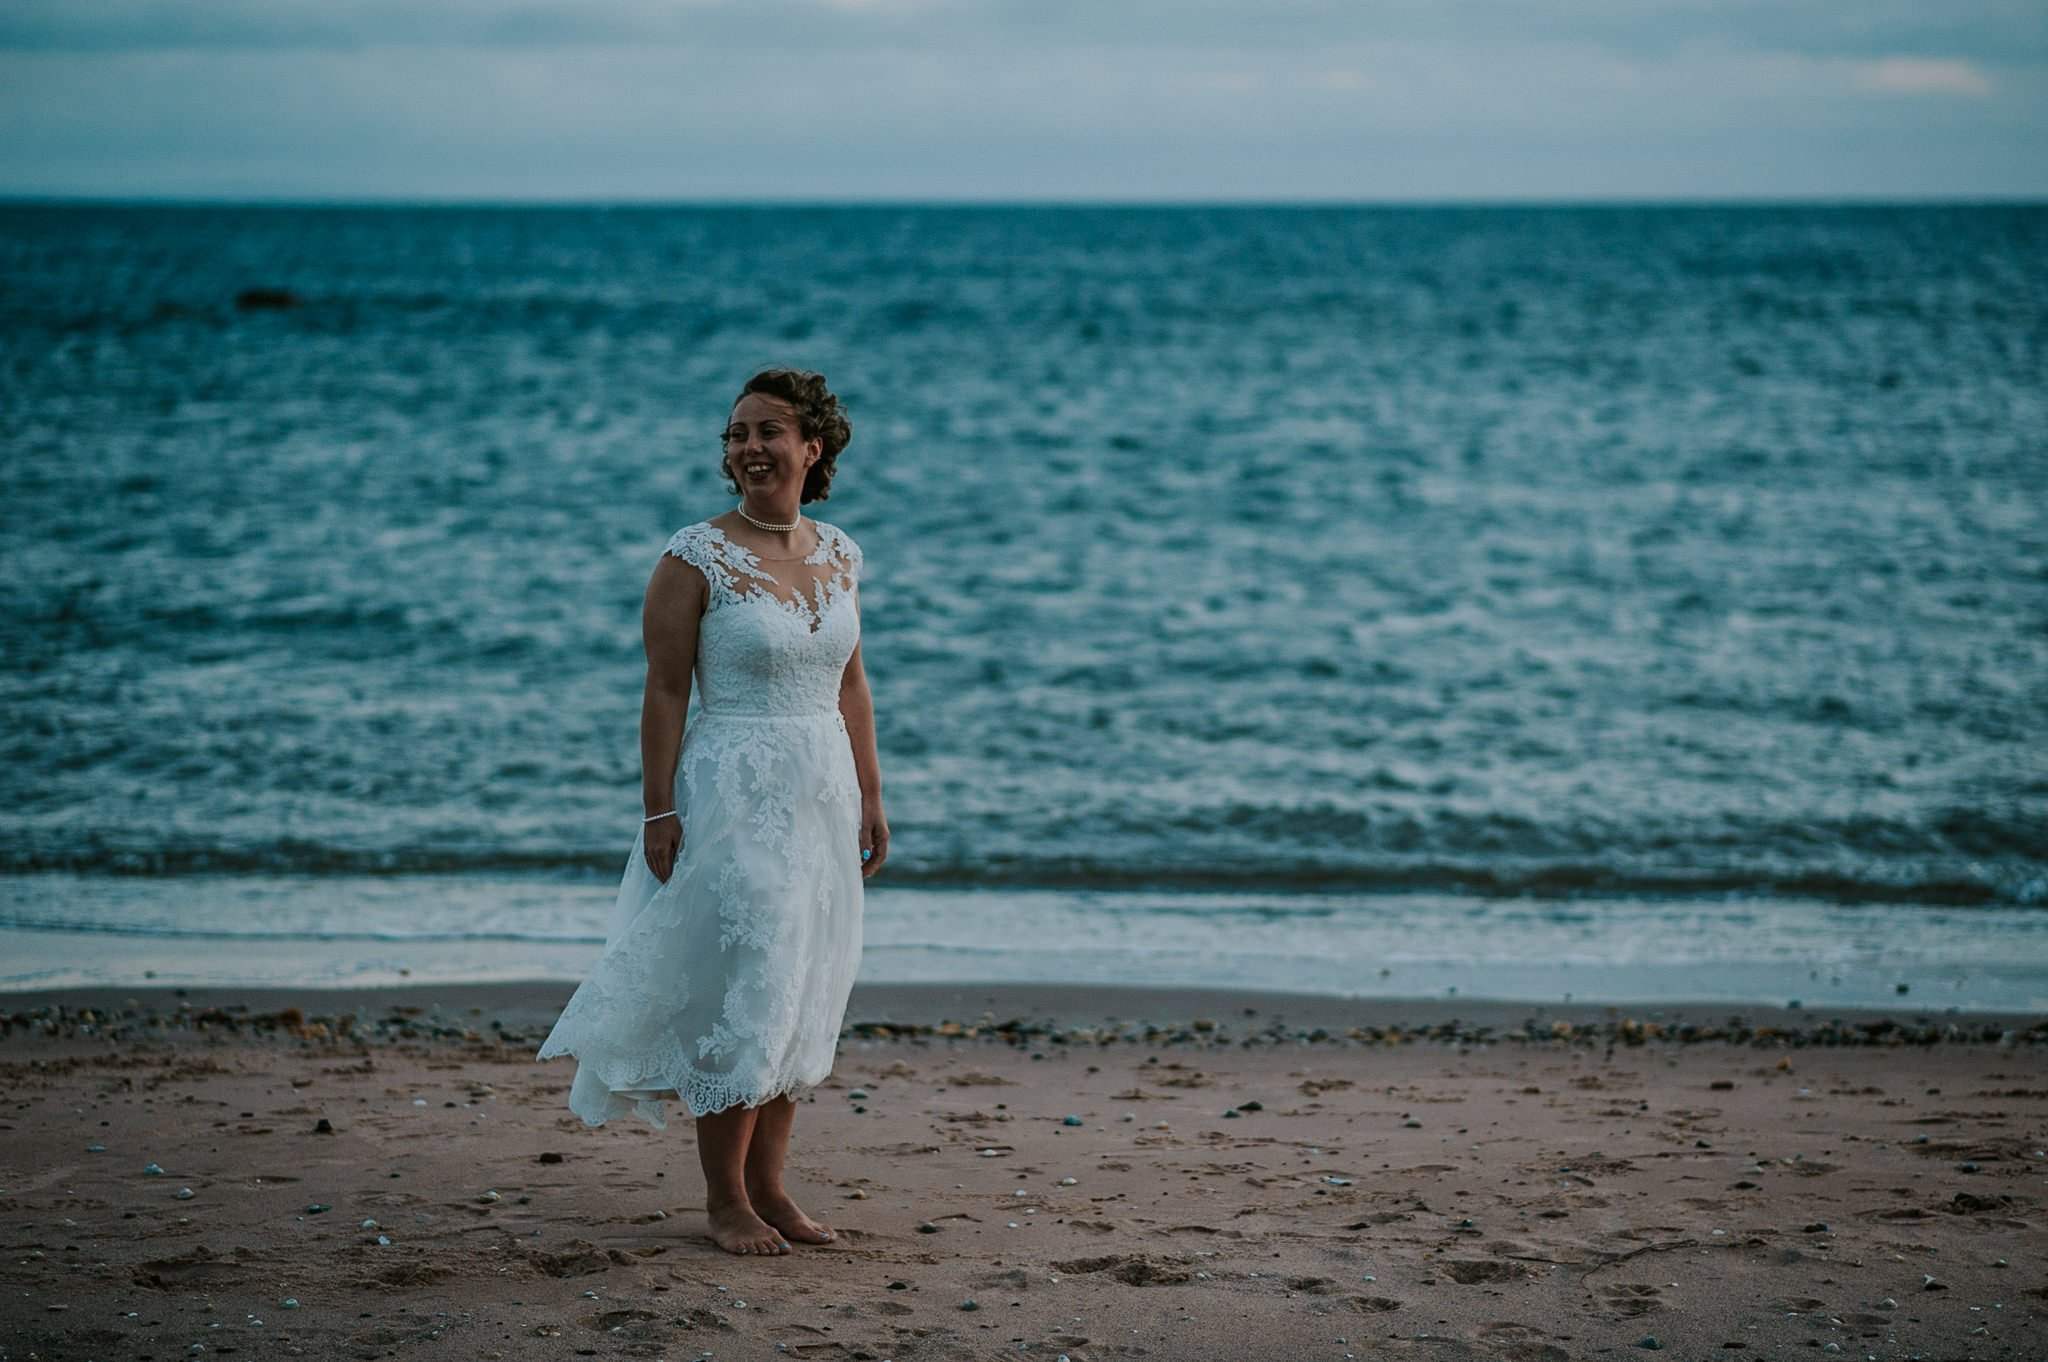 bride on the beach in the evening light